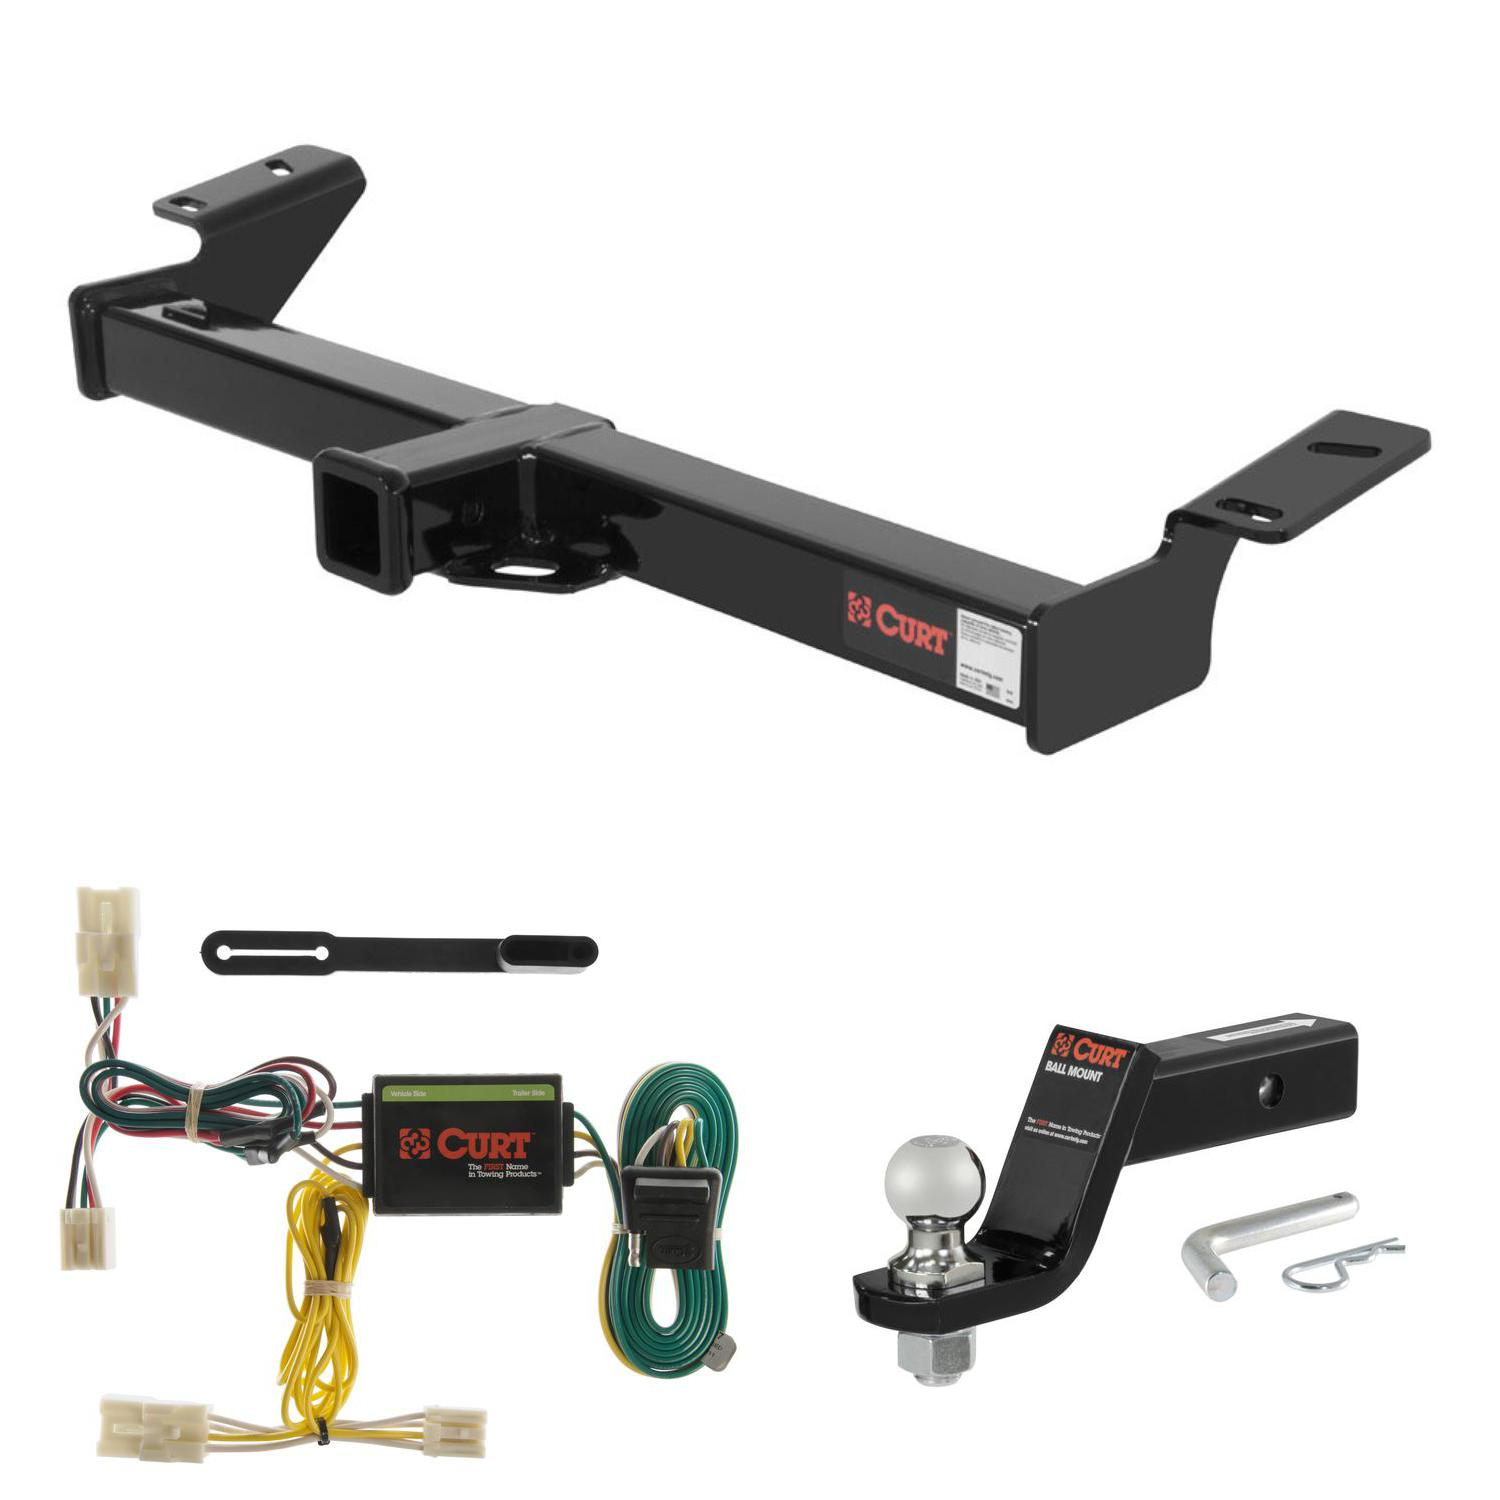 Curt Trailer Hitch Wiring Installation Solutions Rav4 2 Ball Mount W 4 Drop For 01 05